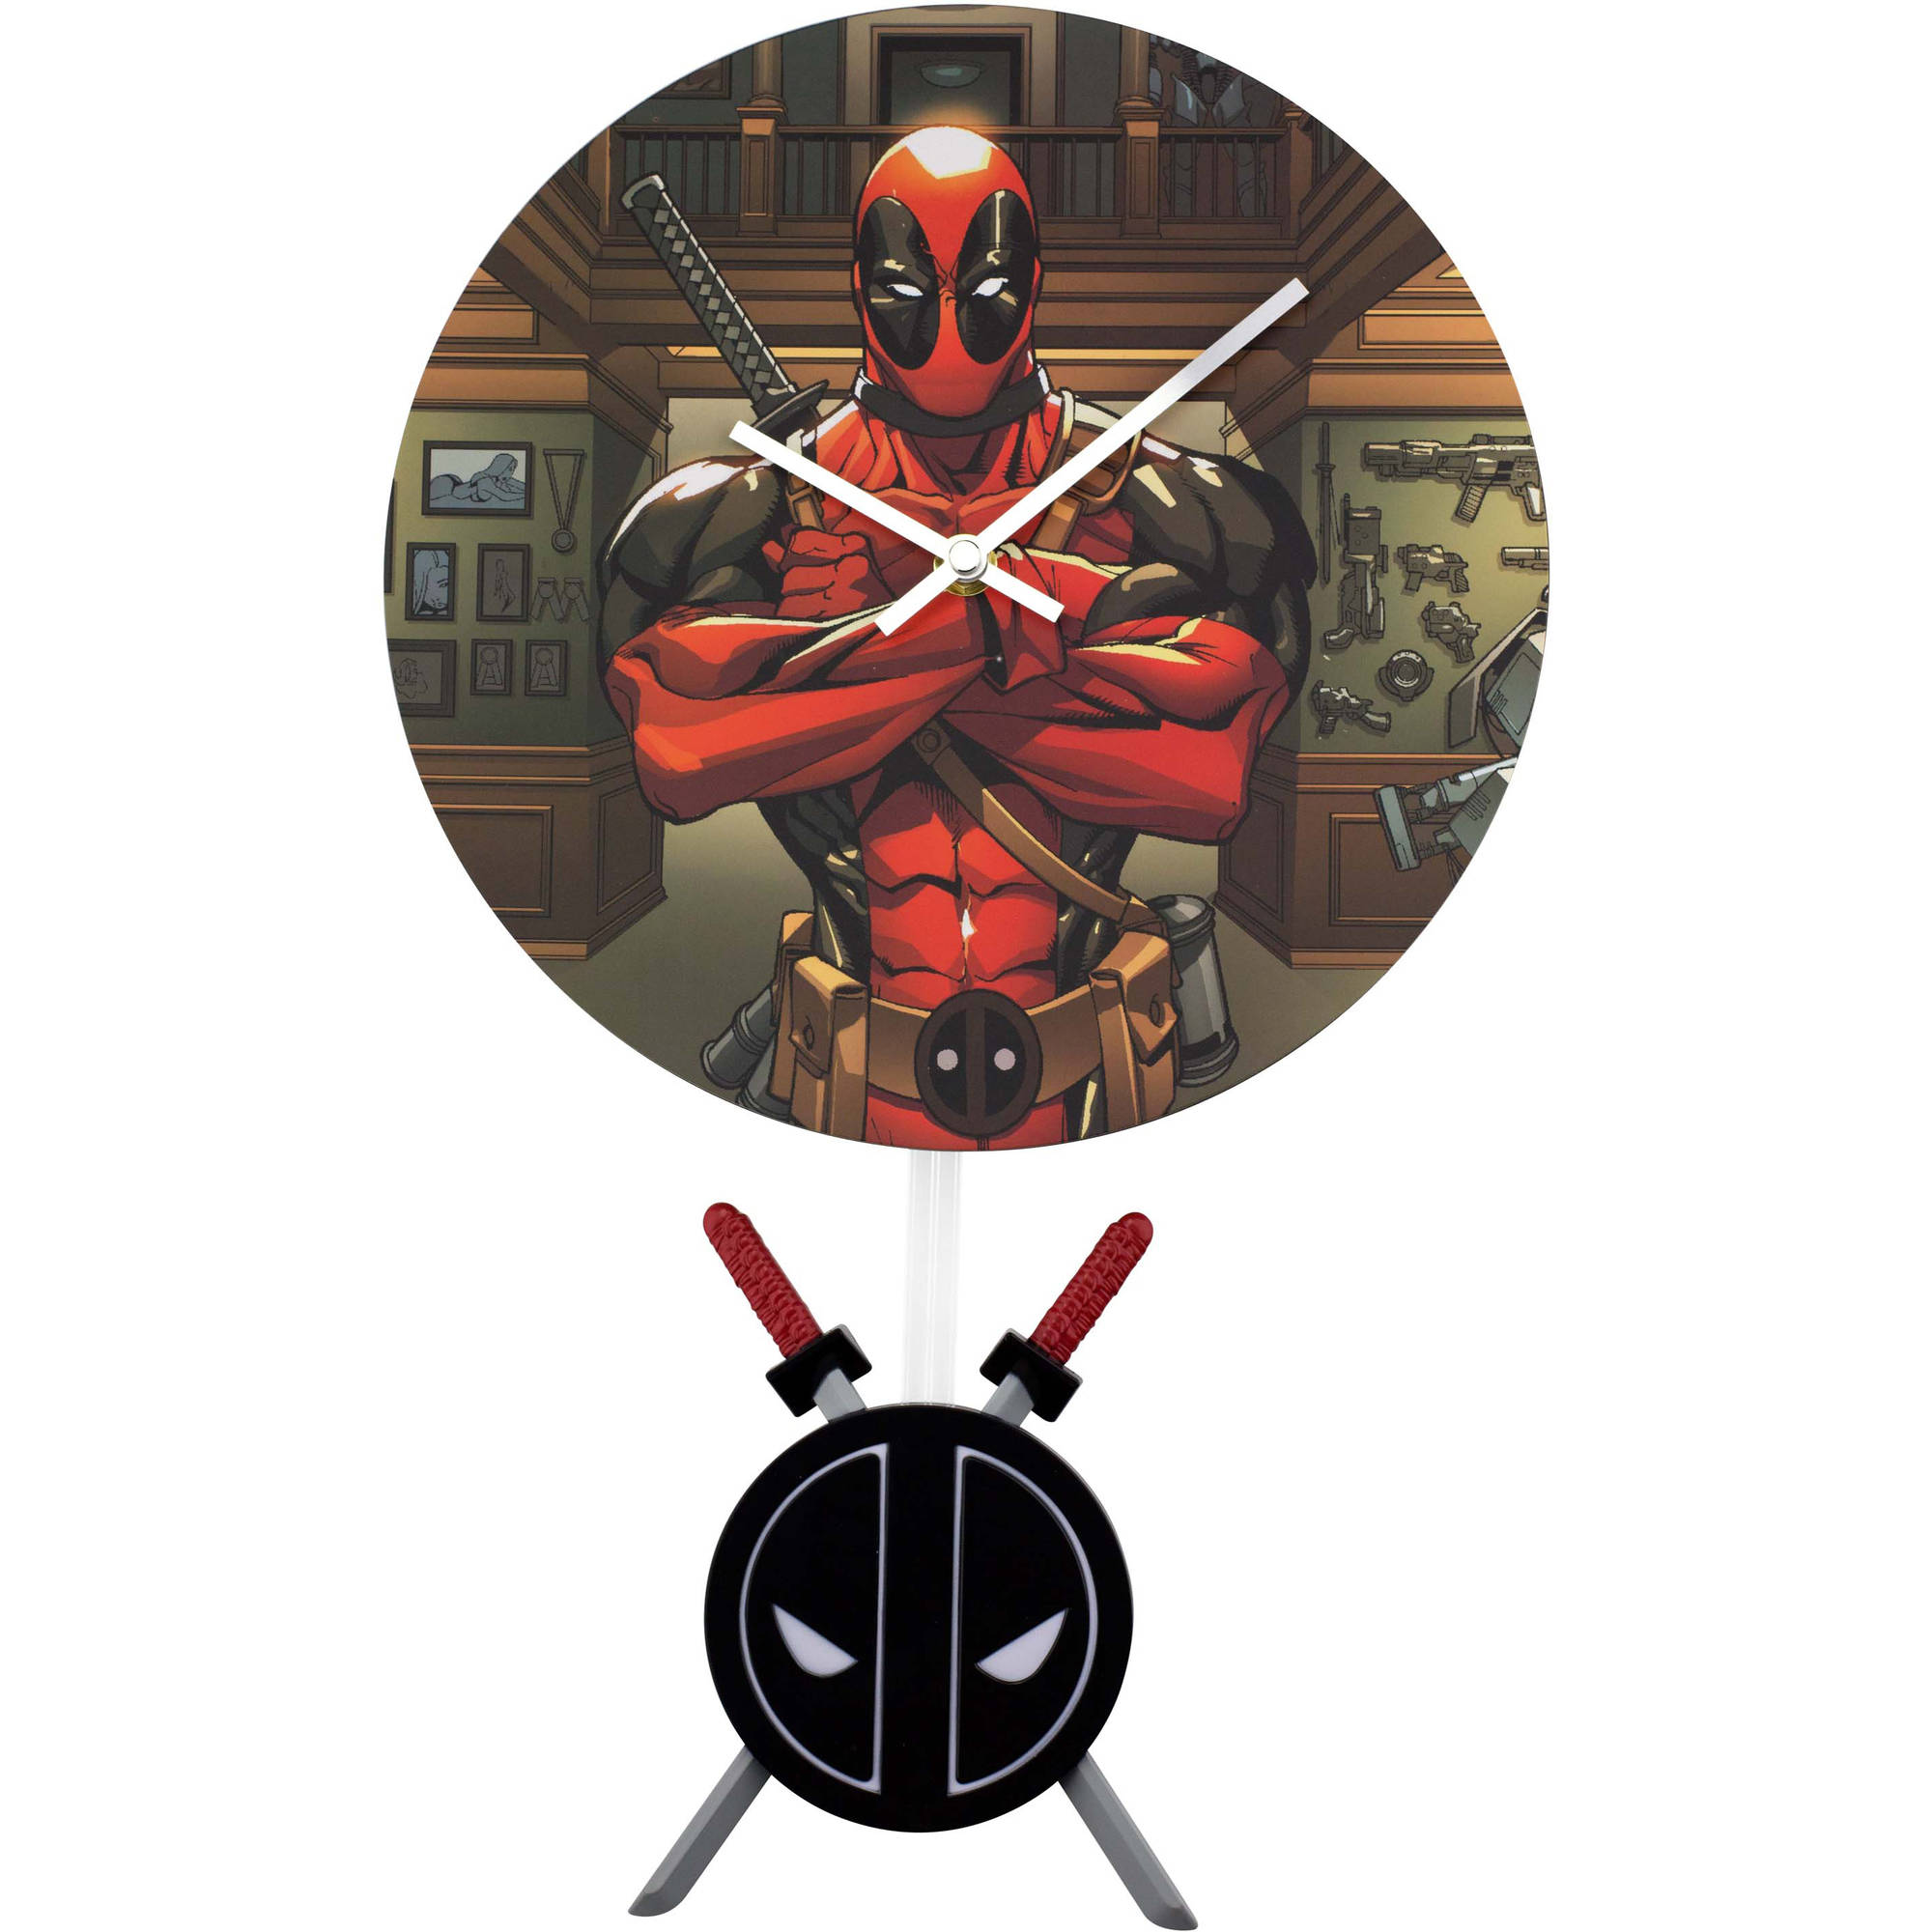 NJ Croce Deadpool Clock, CL 4658